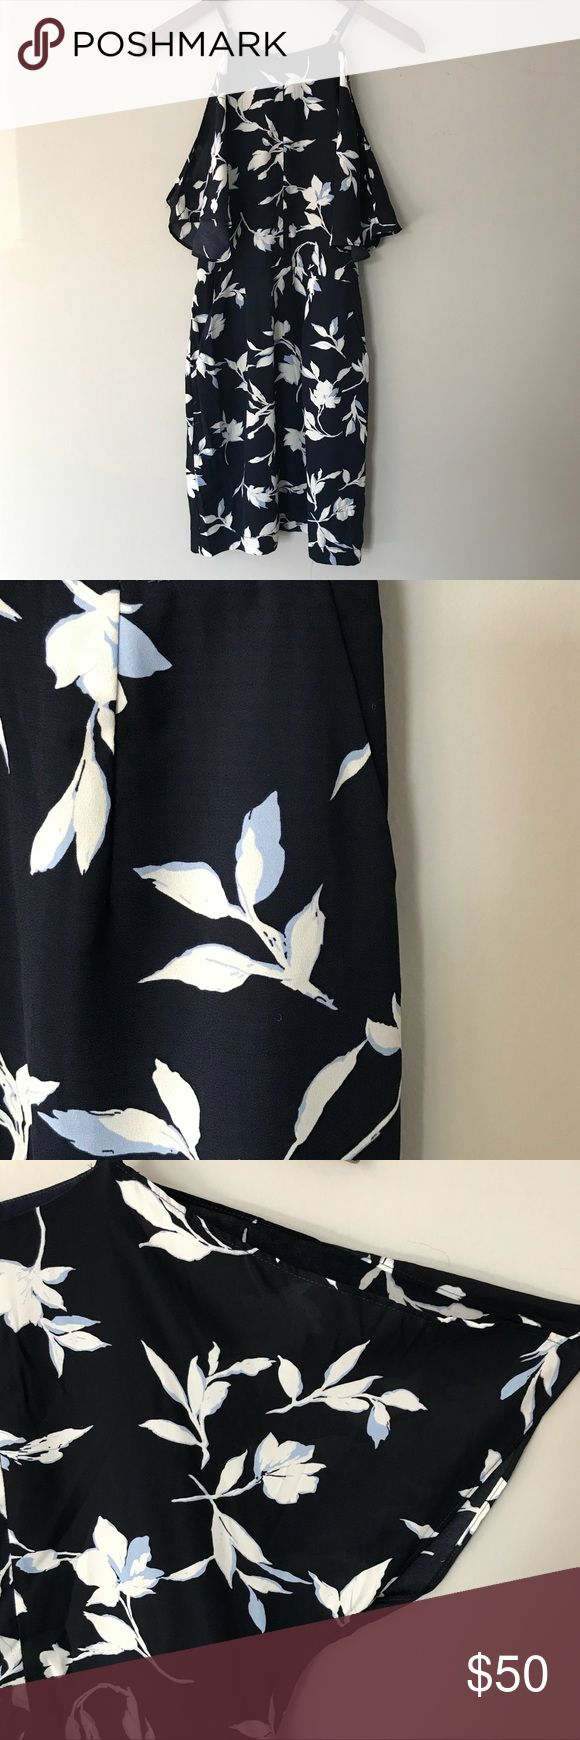 Adelyn Rae Navy Floral Dress In great condition! Worn once for a wedding. Love that there is pockets and adjustable straps. Fits true to size. Adelyn Rae Dresses Midi